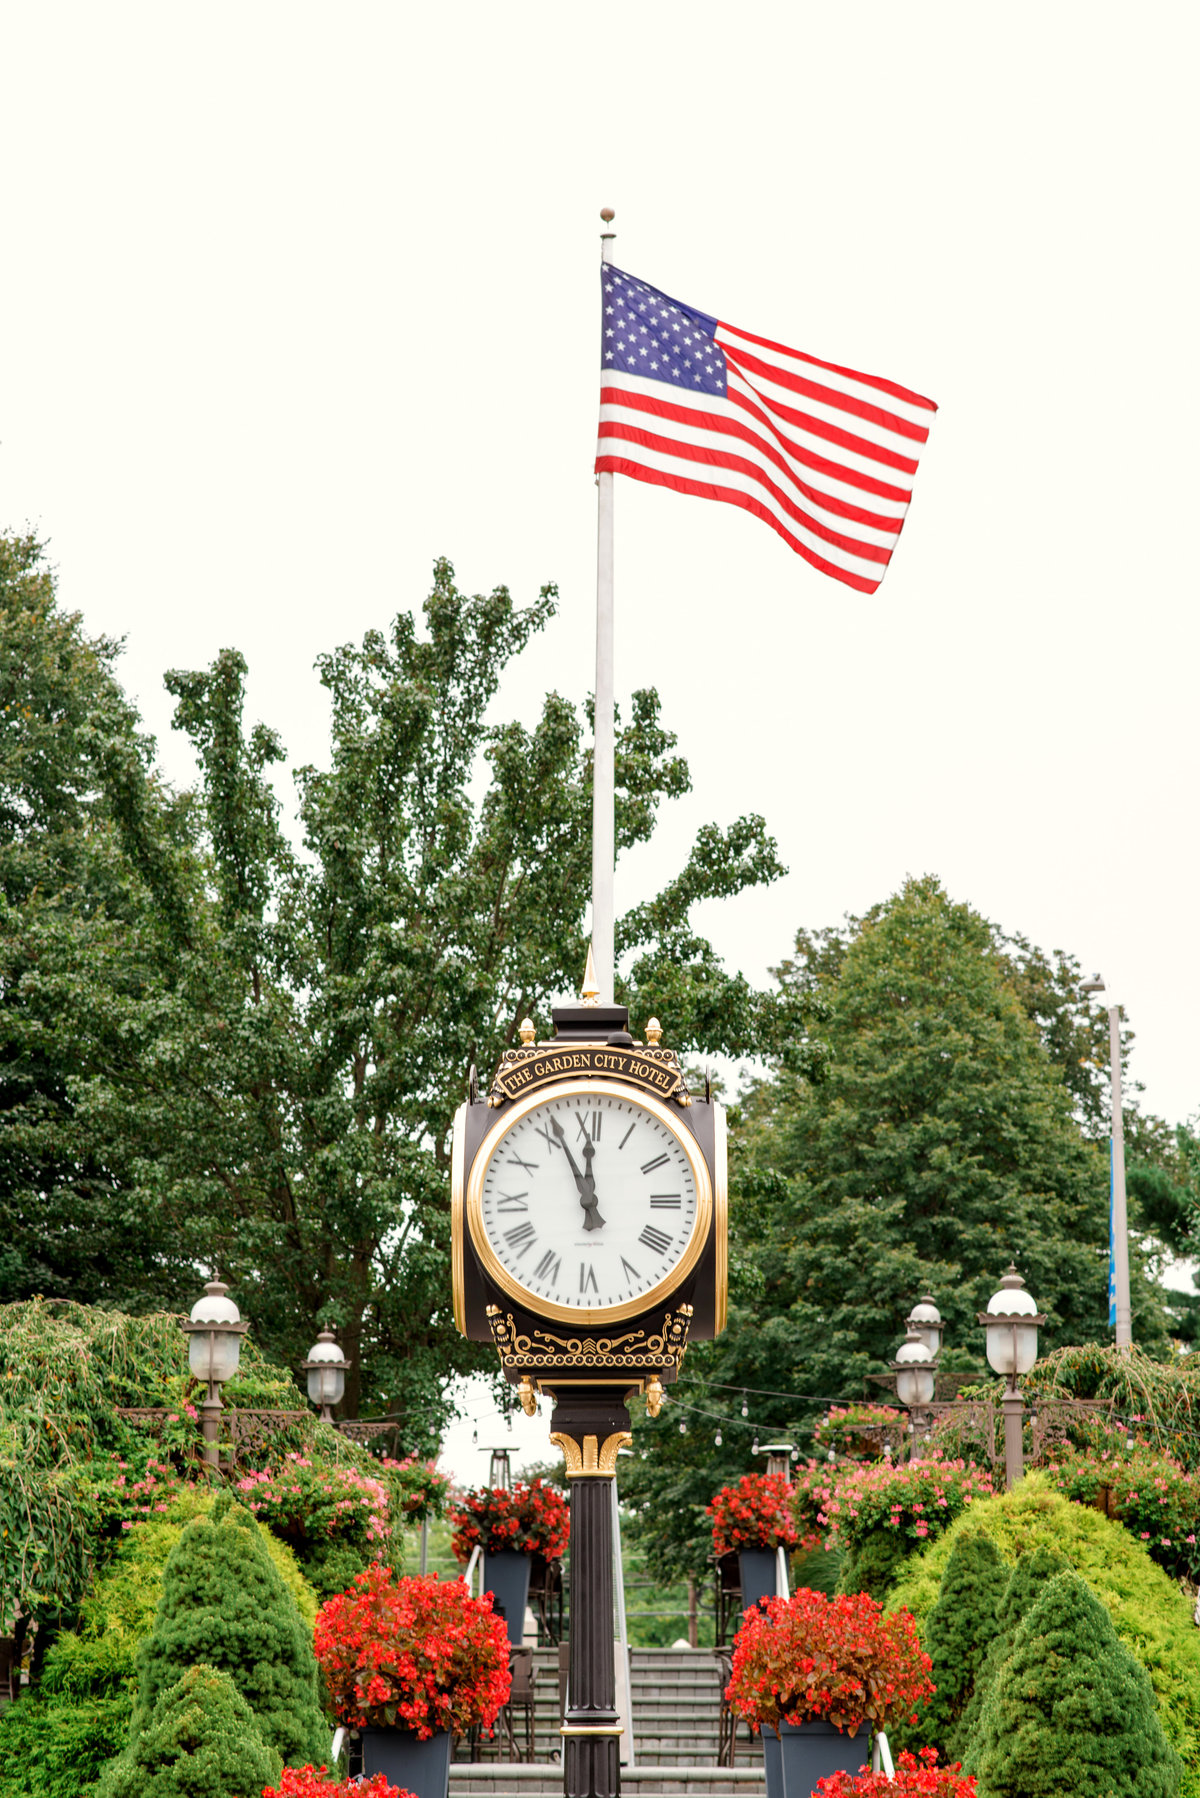 photo of the clock and American flag from outdoors at The Garden City Hotel